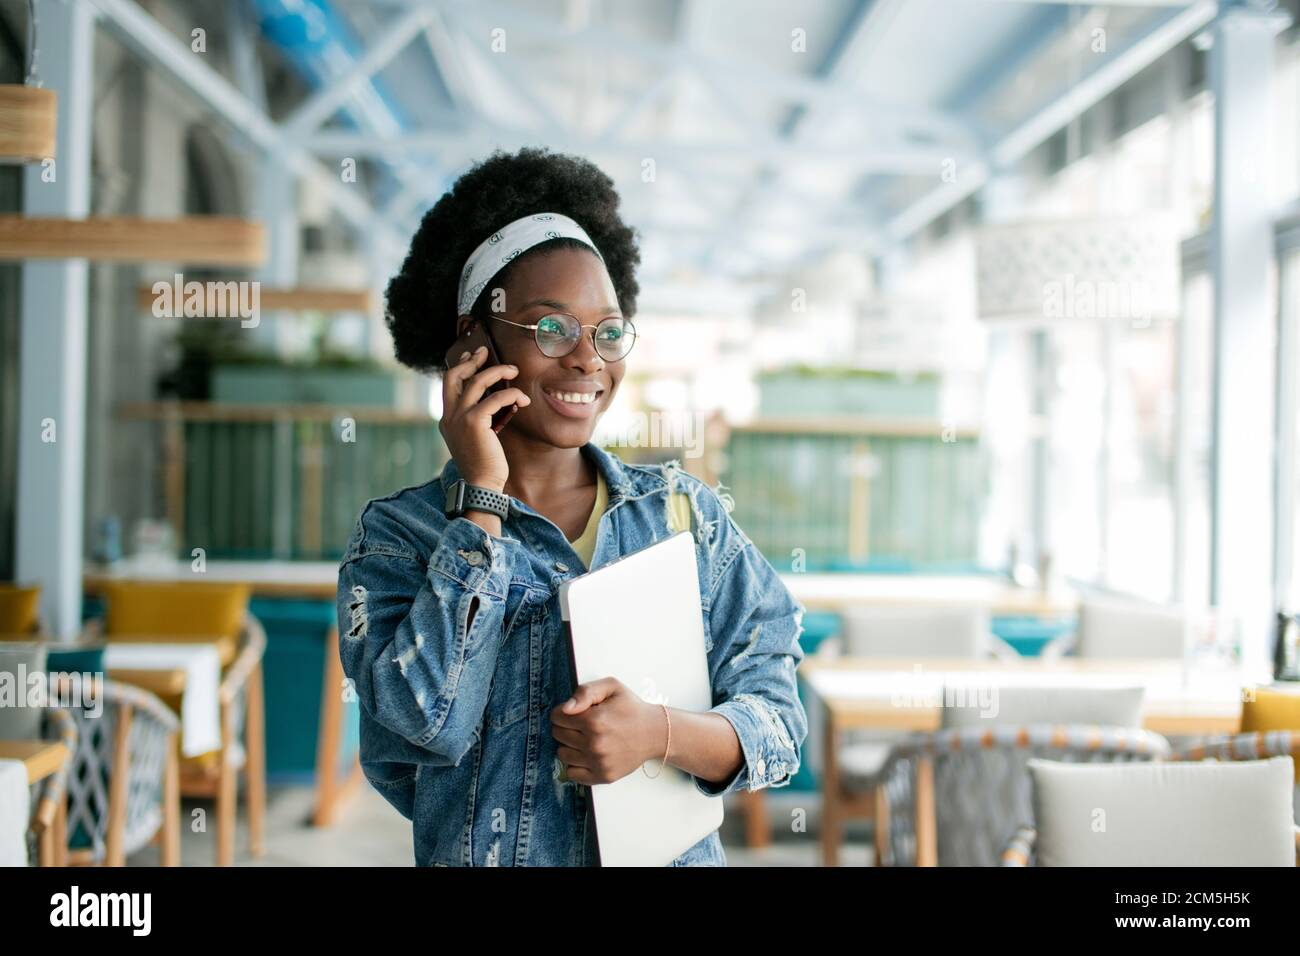 Cute dark skinned female entrepreneur holding digital tablet, making call while visiting coffee shop, inviting a candidate to a job interview. Stock Photo